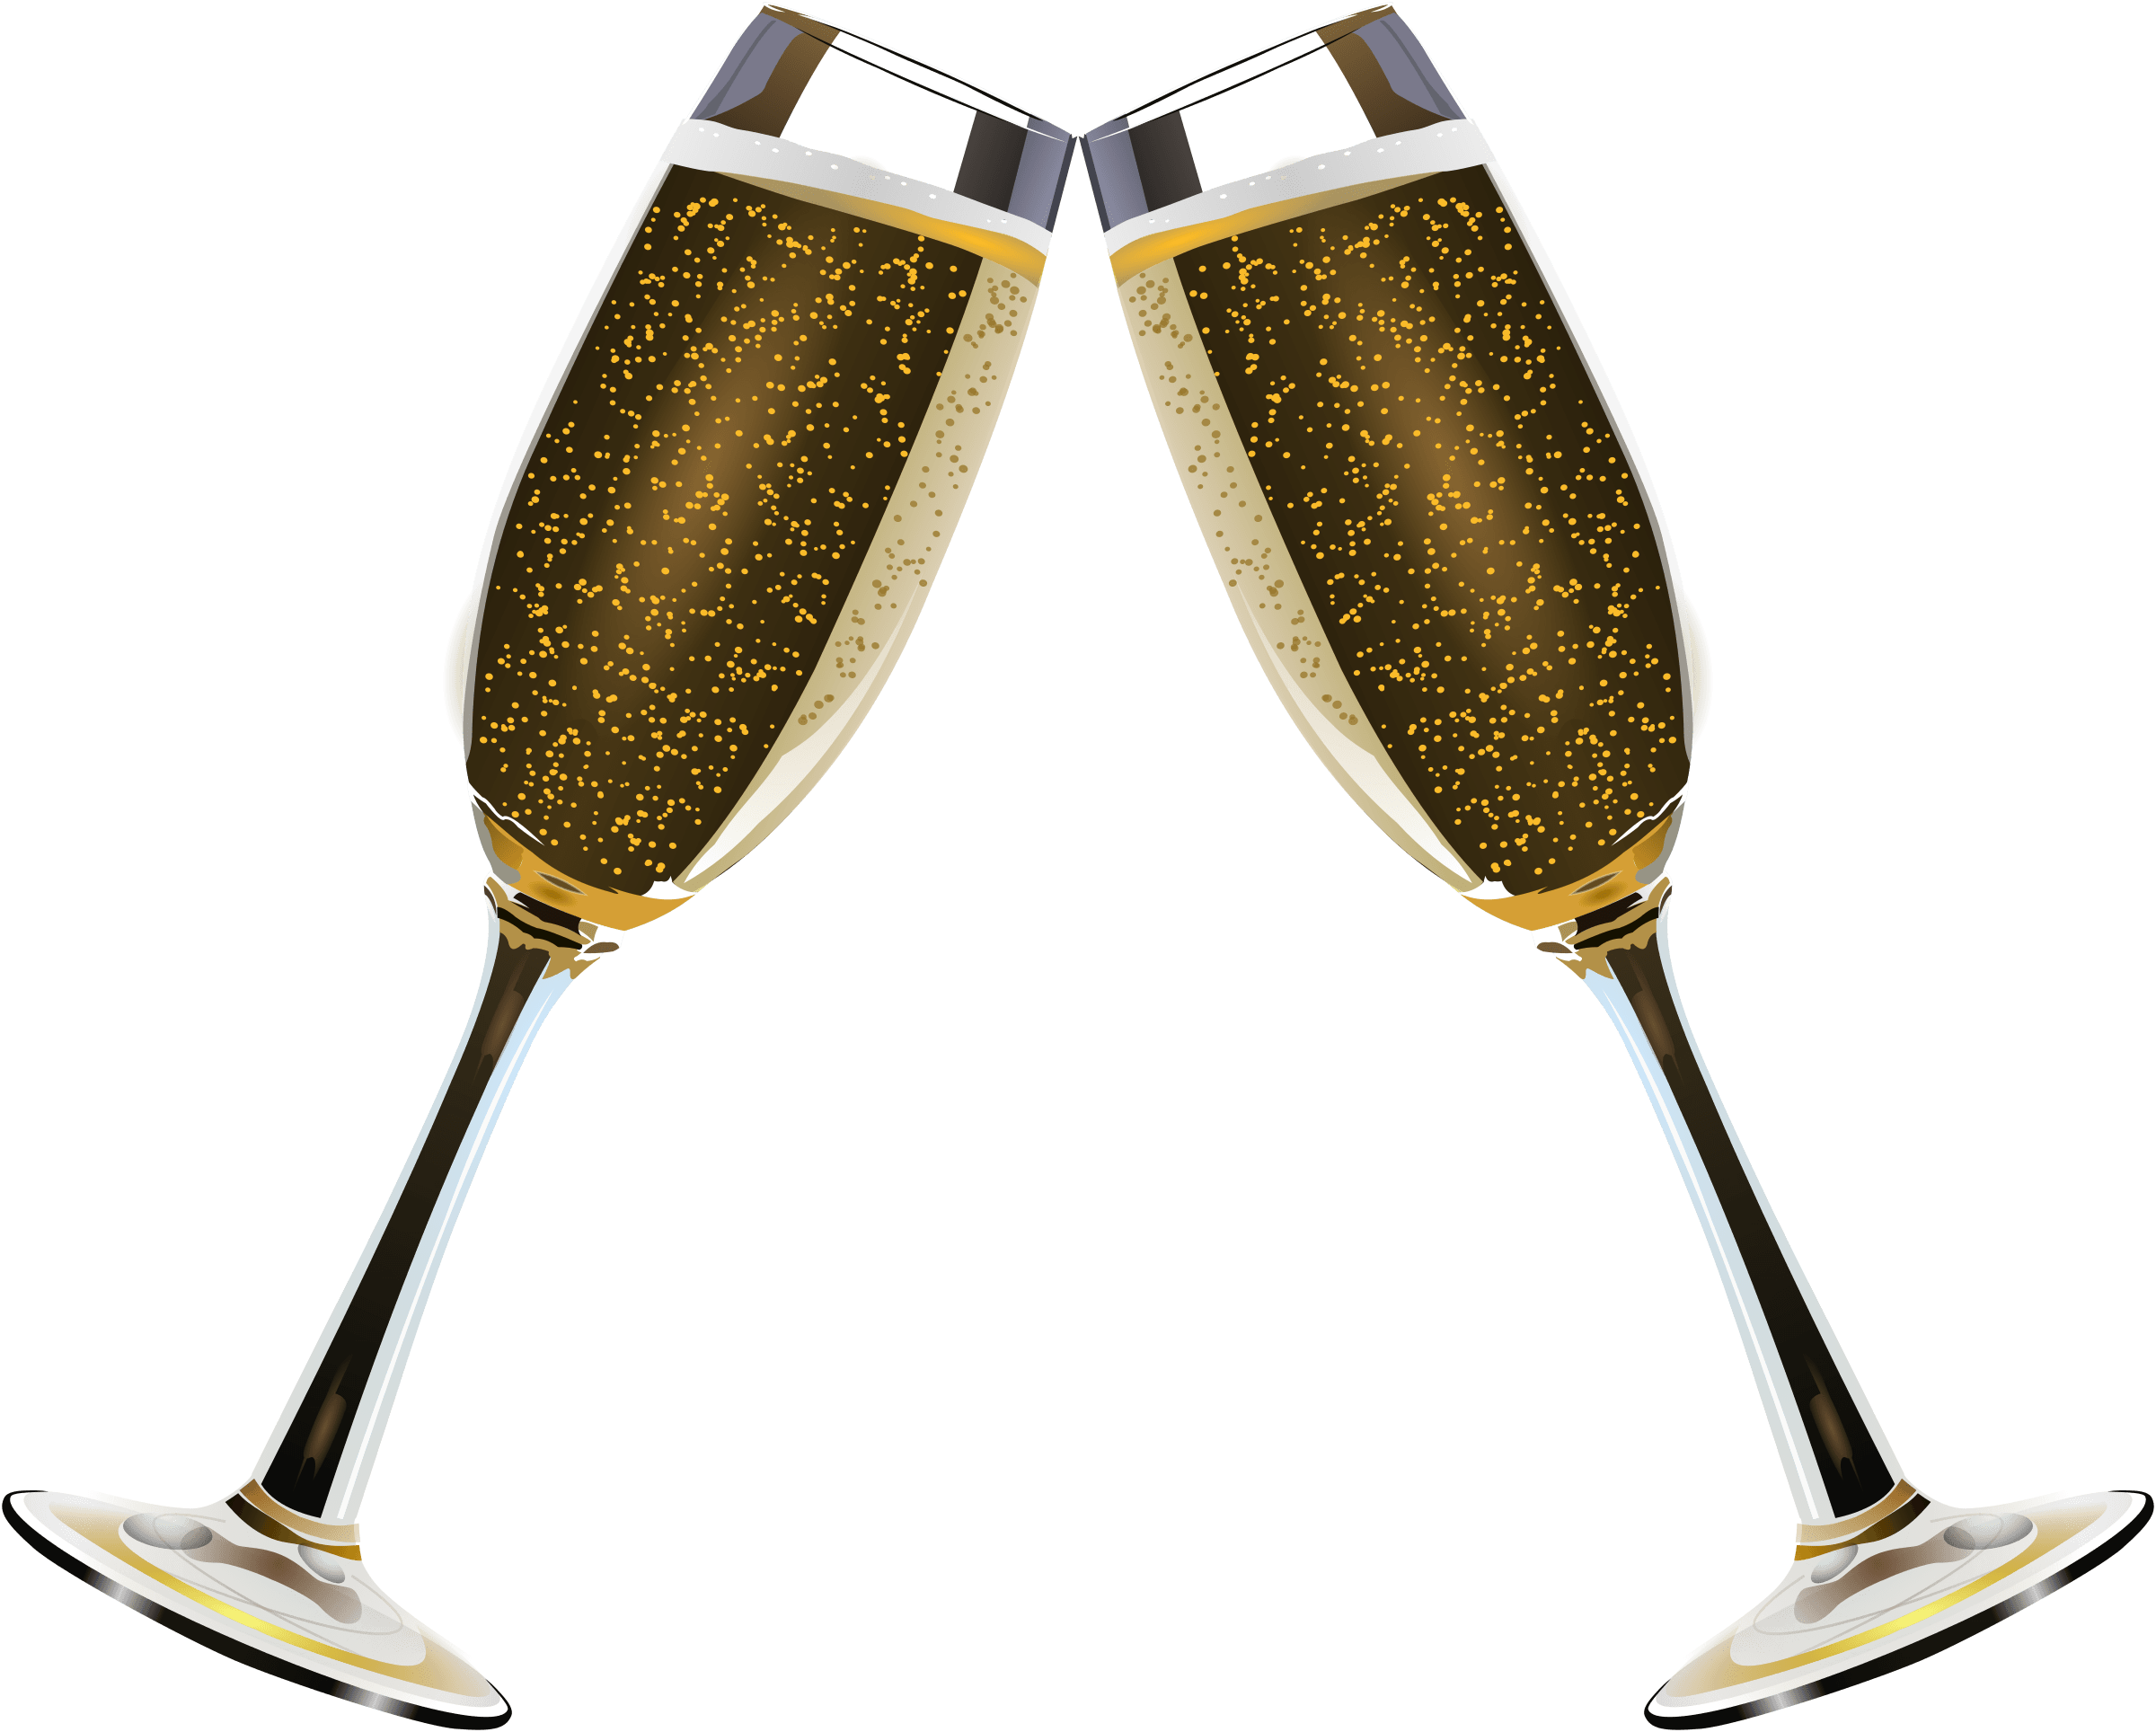 Champagne clipart champagne bubble. Glass of bubbles transparent